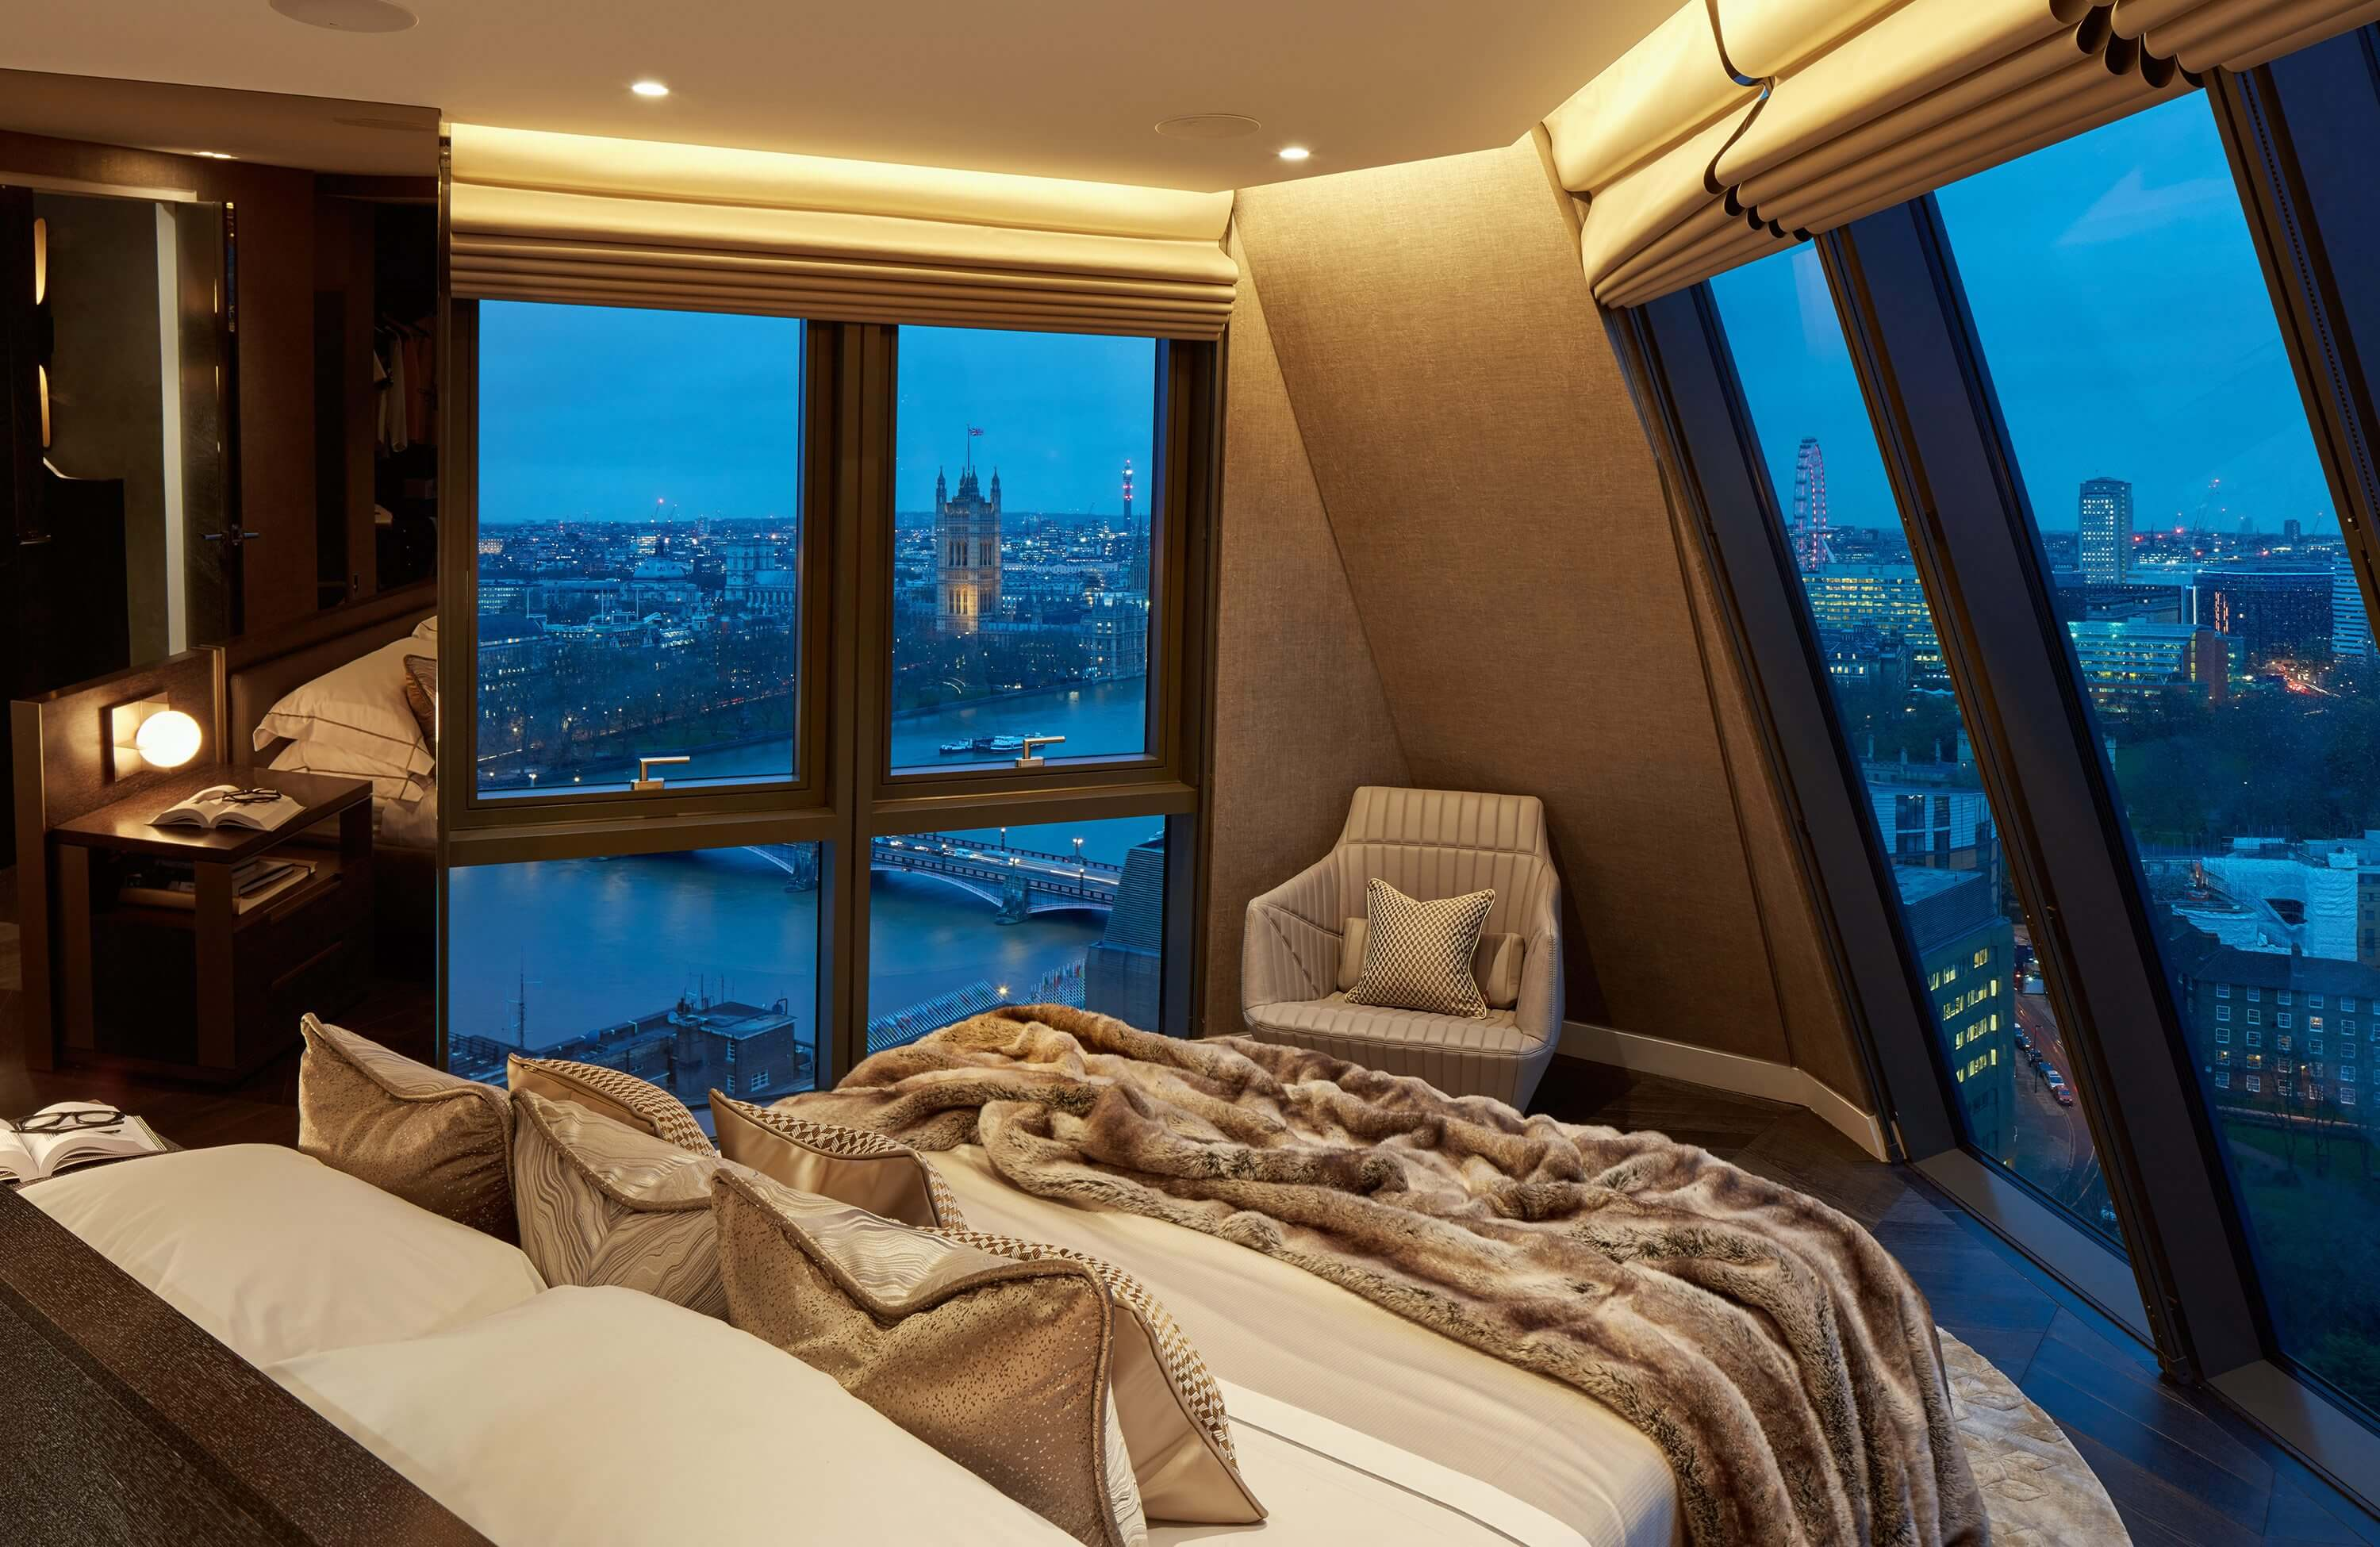 Honky Interior Design Parliament House London Master Bedroom 1